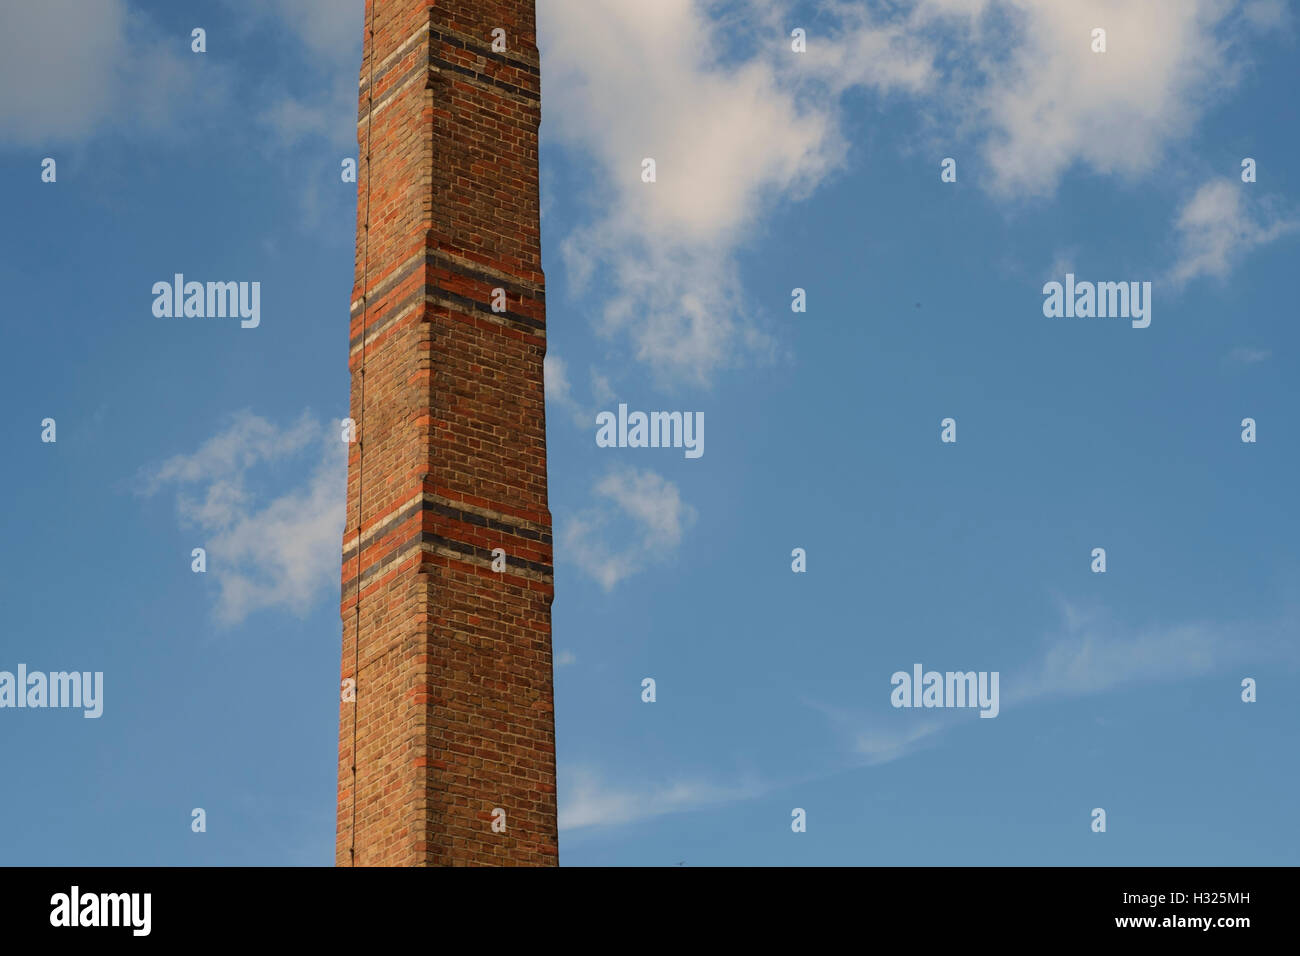 The chimney tower at Cox's Yard Stratford-on-Avon - Stock Image